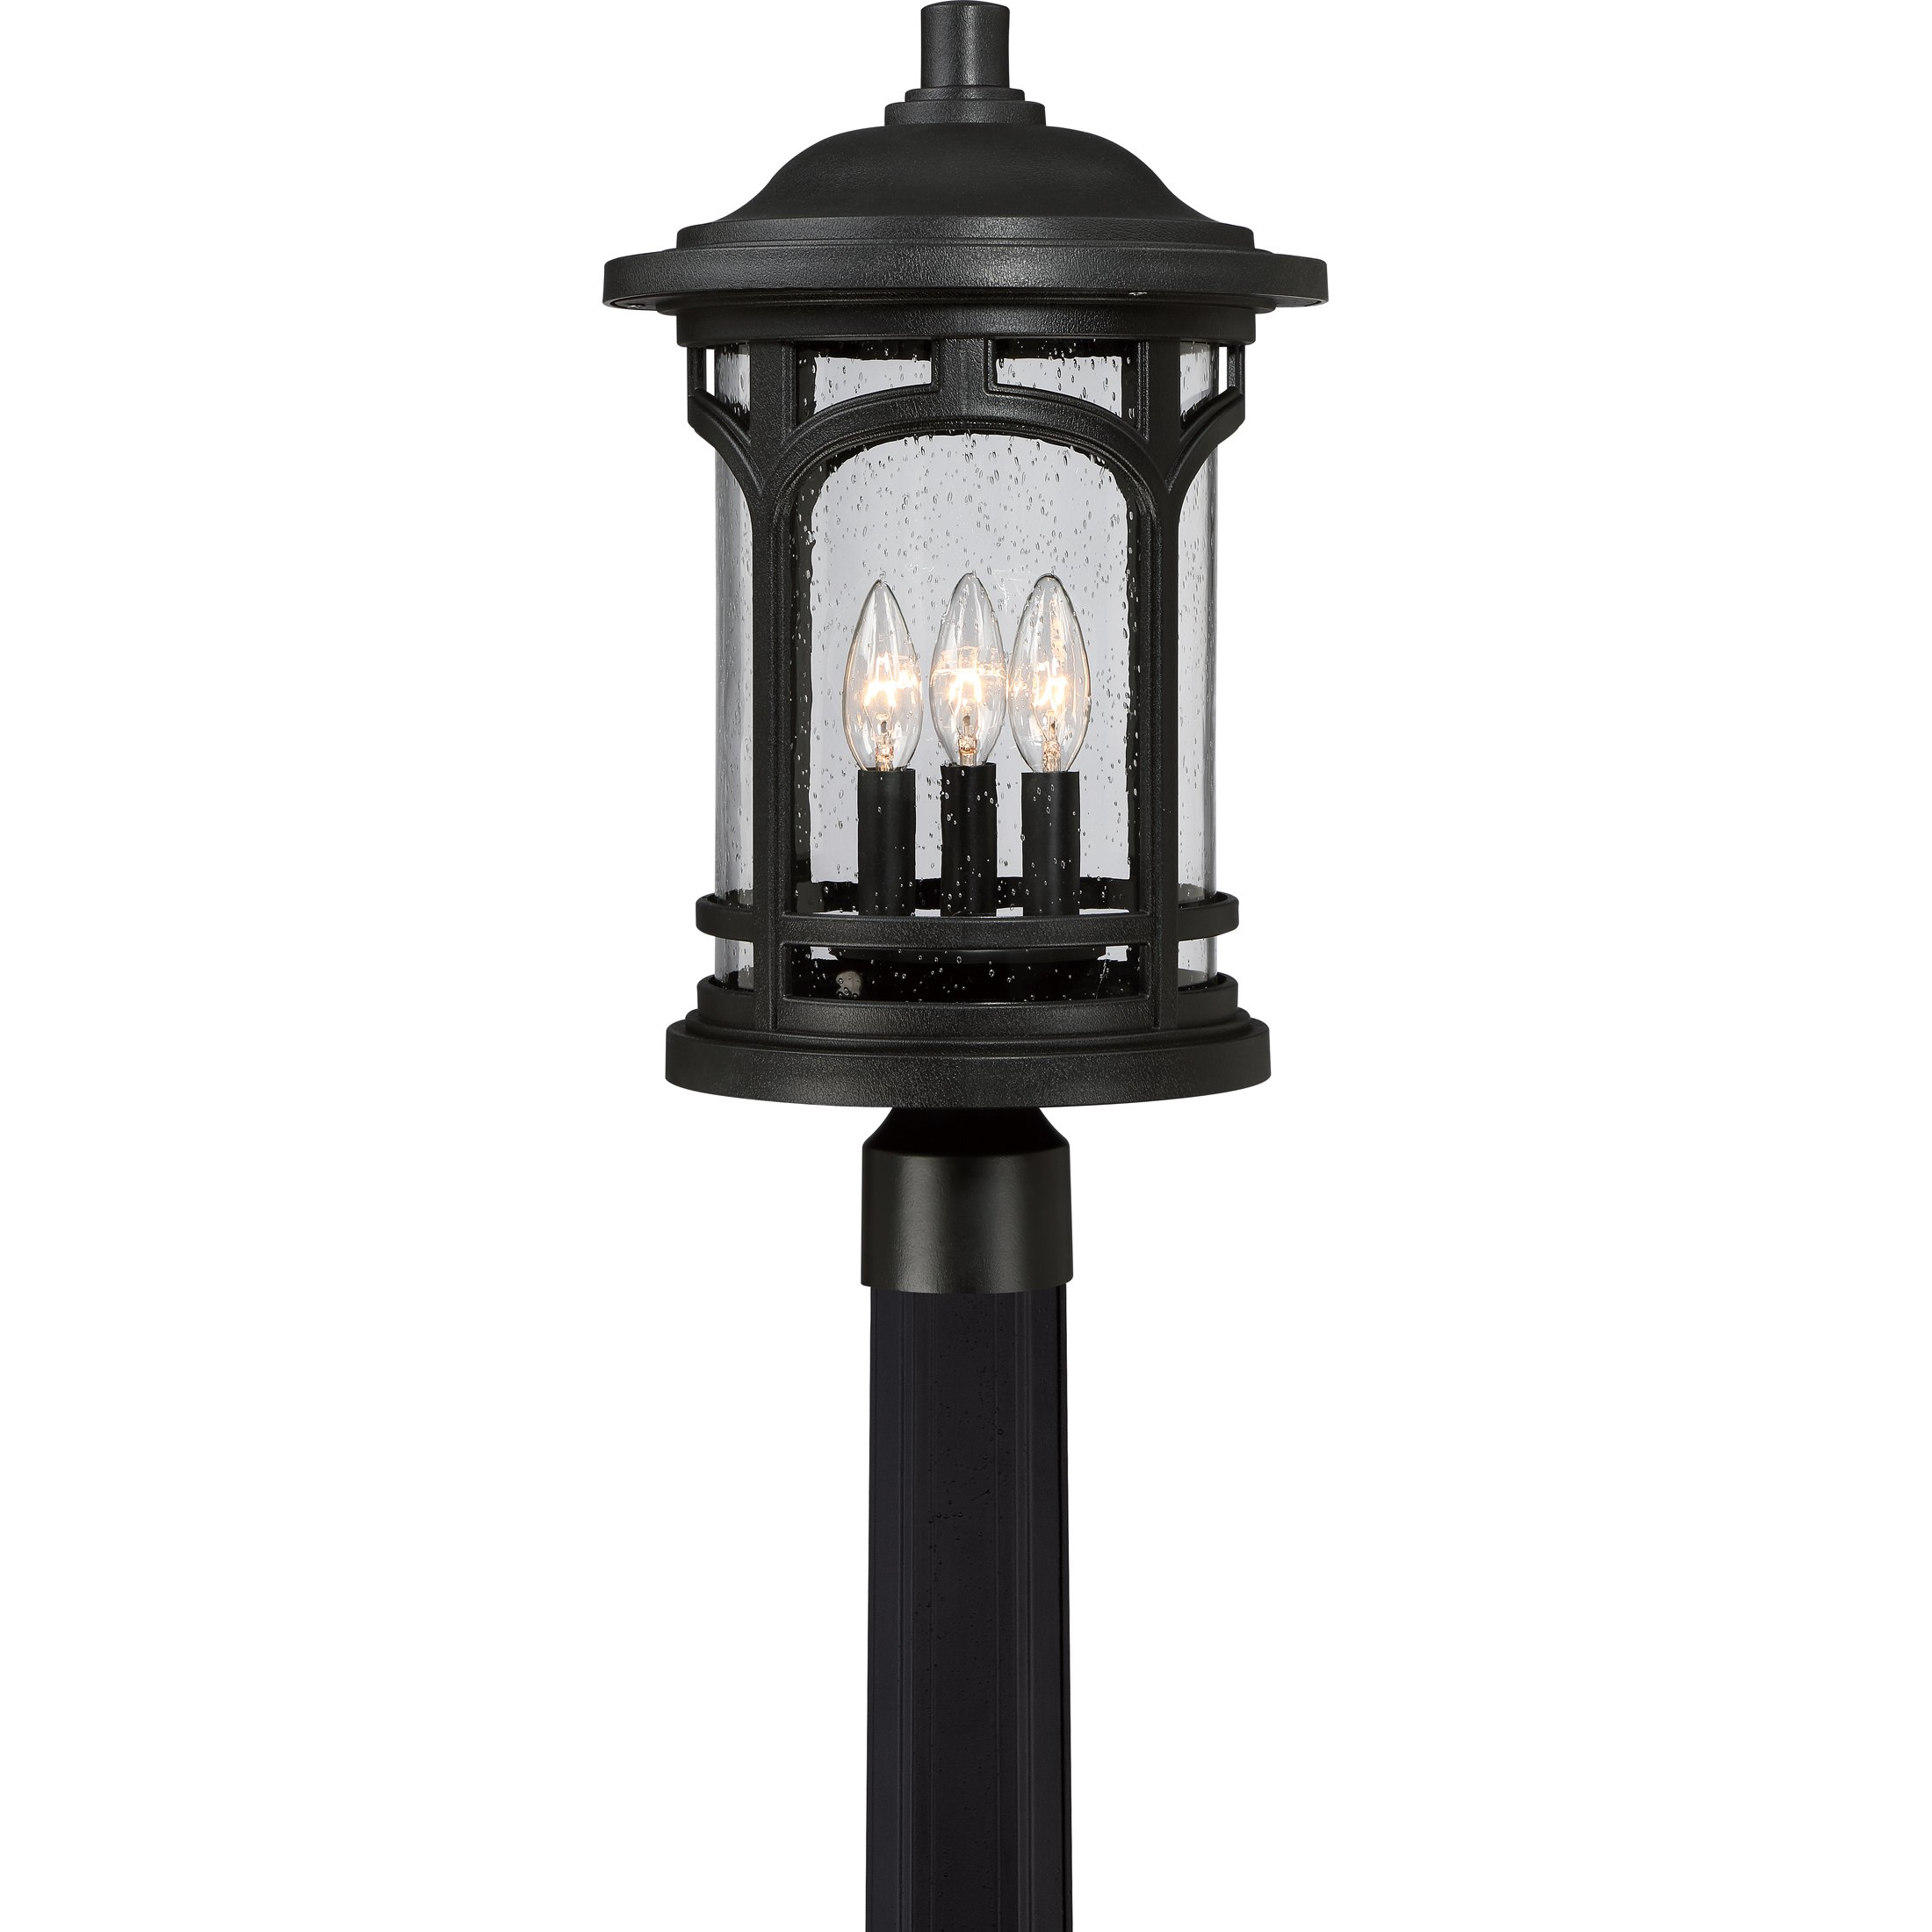 MBH9011K Three Light Post Marblehead Outdoor Lantern in Mystic Black